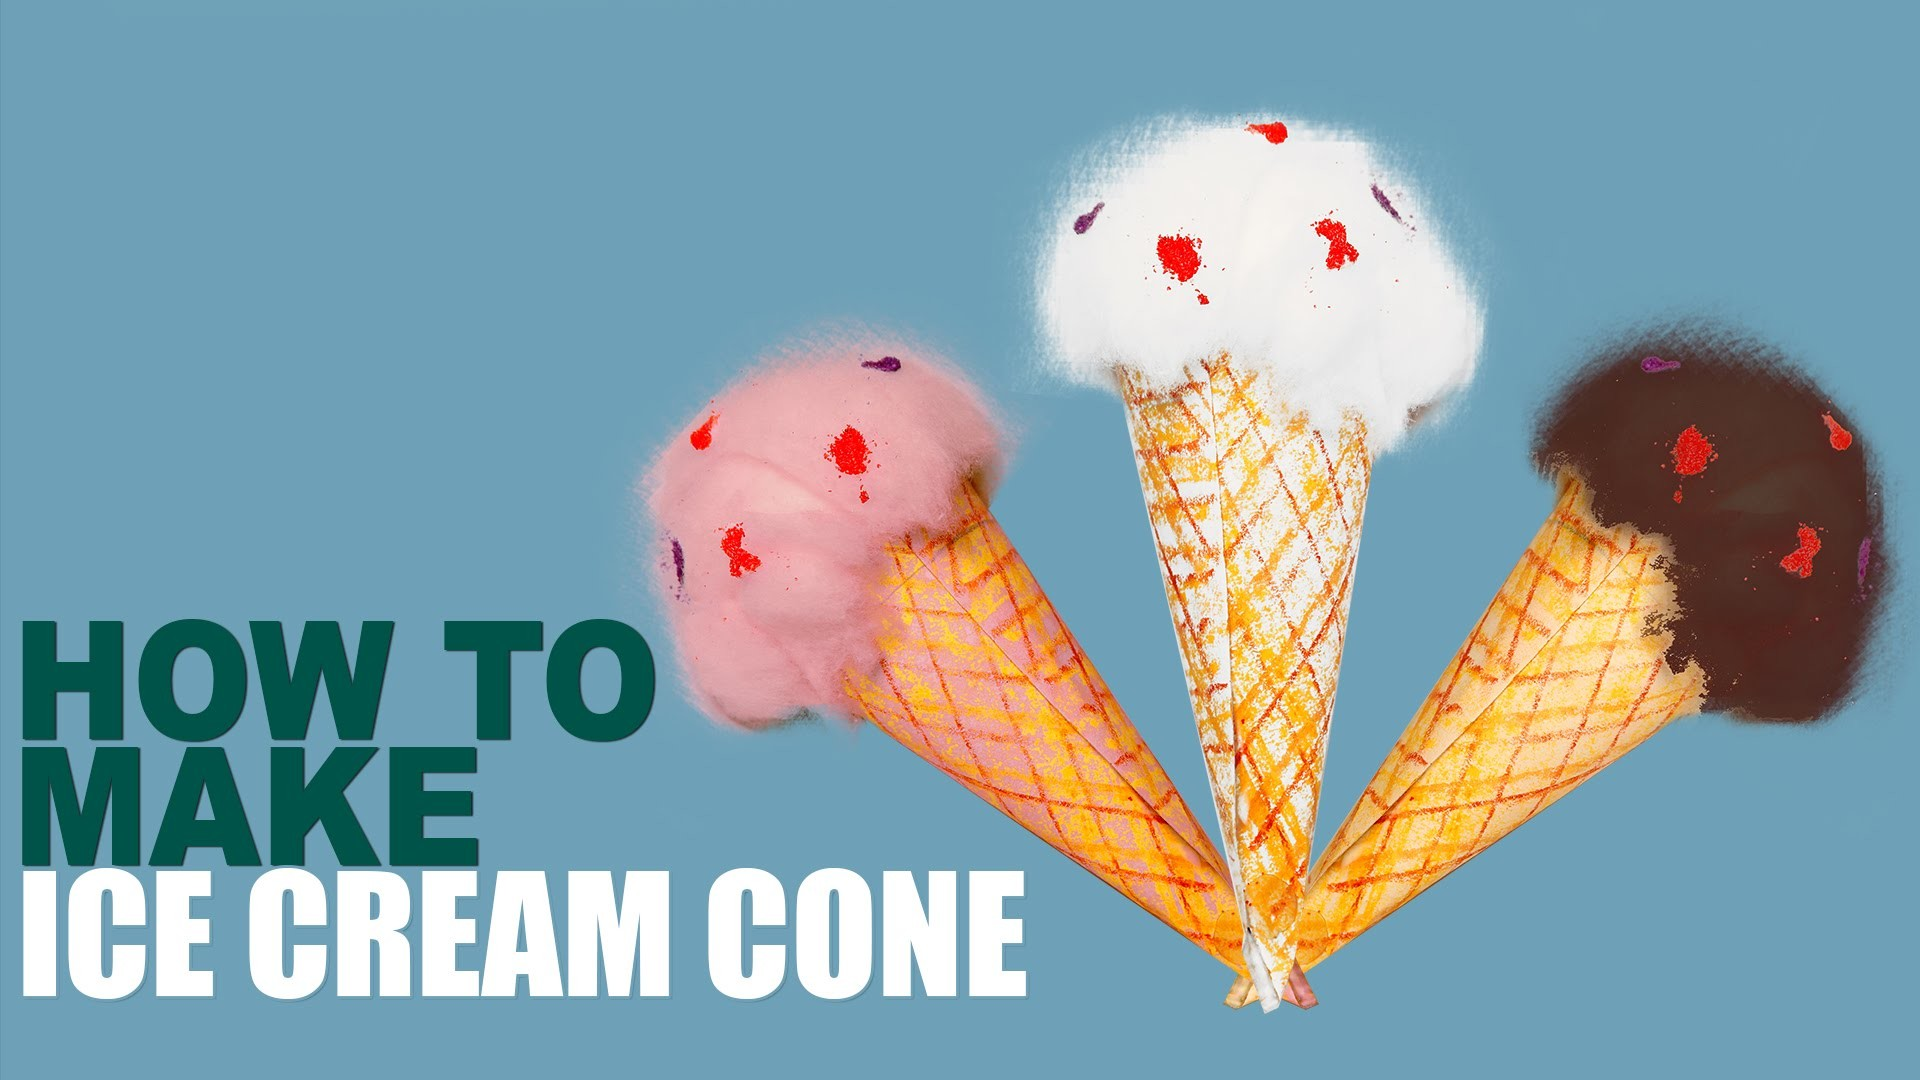 How to Make Ice Cream Cone | Learn Art and Craft | DIY Ice Cream Cone | Kids Art and Craft